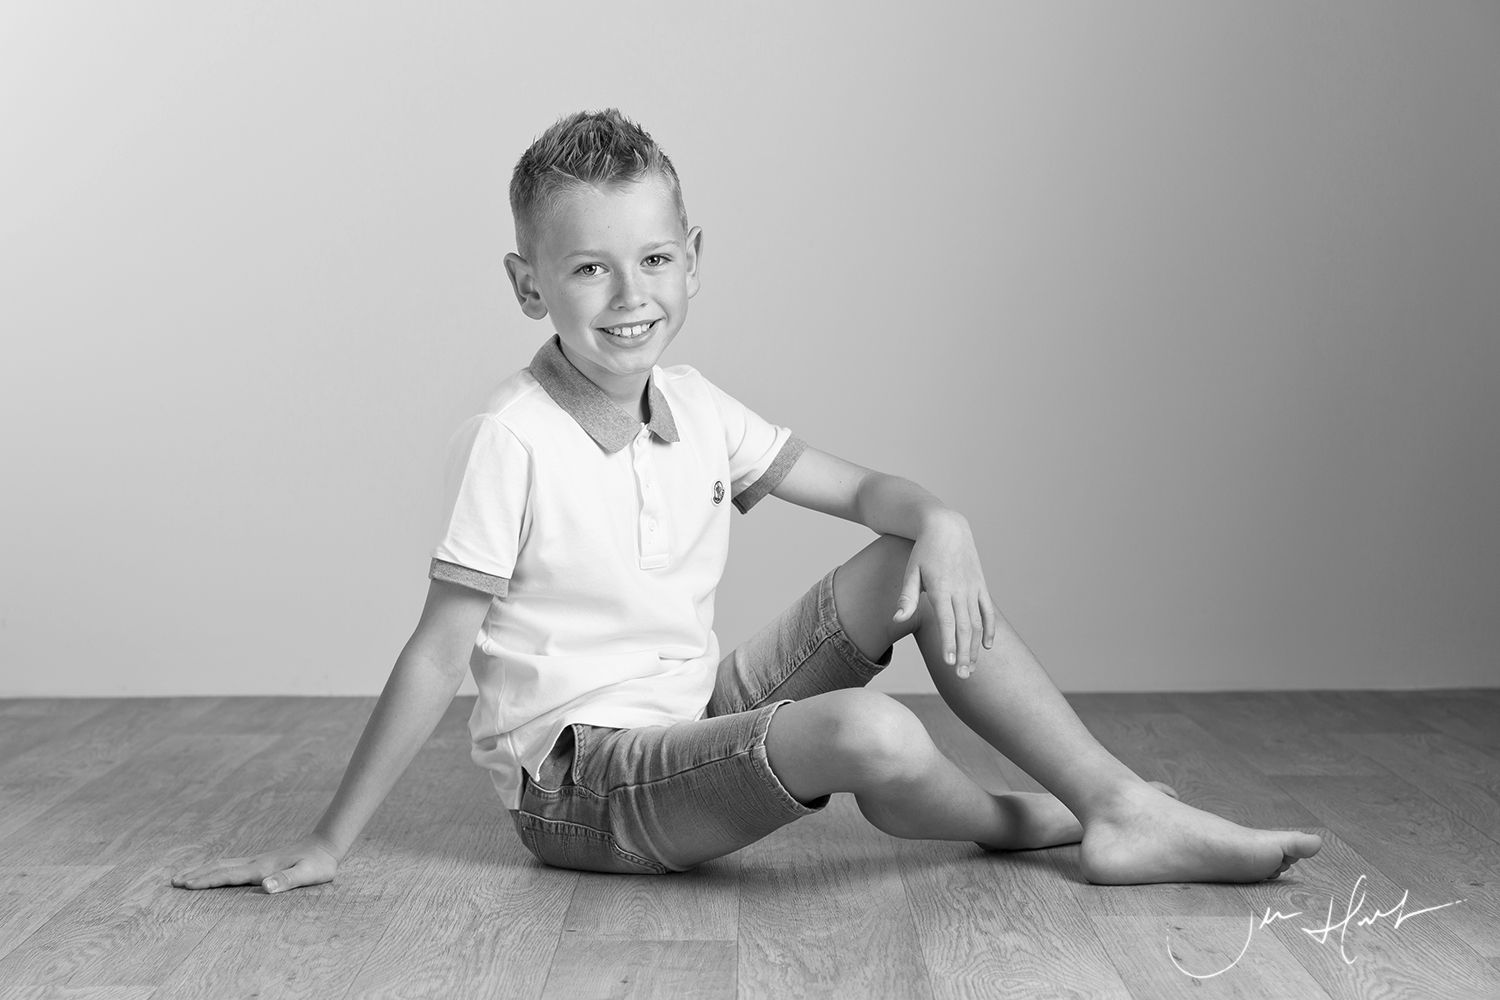 Children-Studio-Photography-Middlesbrough-Jen-Hart-Oliver-Lalie- 22August19_008-BW